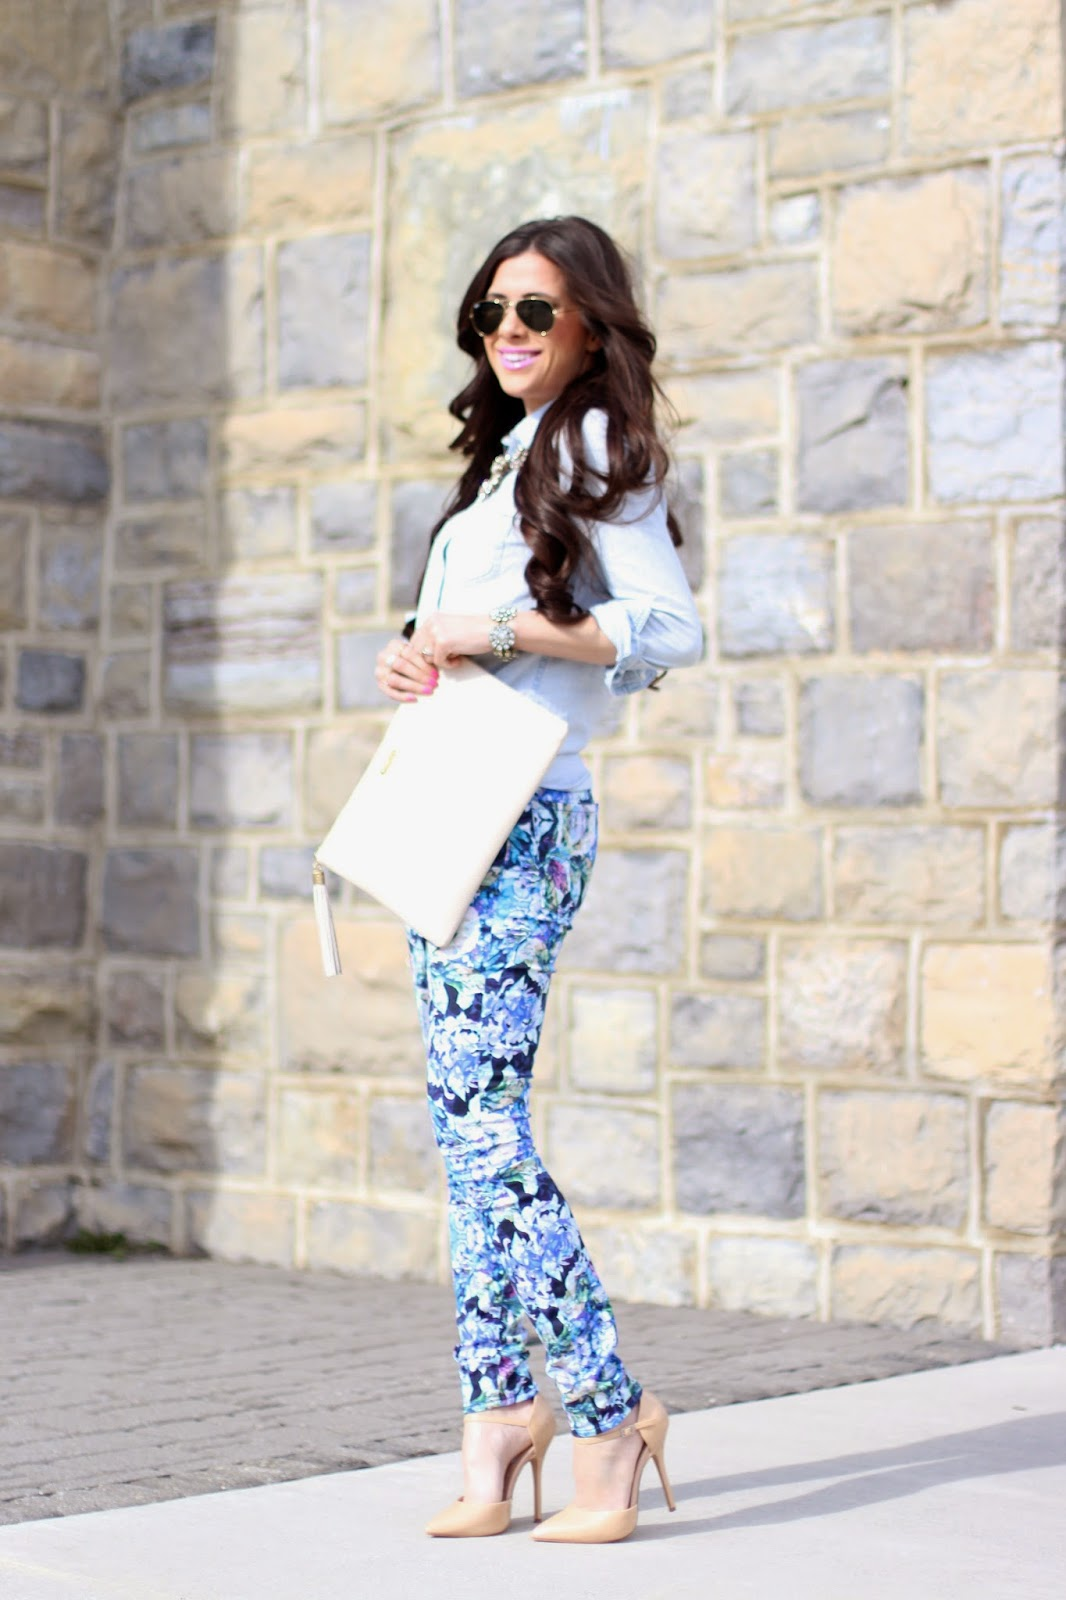 www.thesweetestthingblog.com, Emily Gemma, Seven Jeans, 7FAM kaleidoscope floral print denim, indigo little rock, j.crew chambray popover, rayban aviators, saint germain by mac, nude pumps, spring fashion 2014, spring trends 2014, summer pinterest fashion, michael kors runway watch, bauble bar ring, gigi new york clutch, j.crew crystal lattice necklace, jcrew inspired necklace, vinylux nail polish